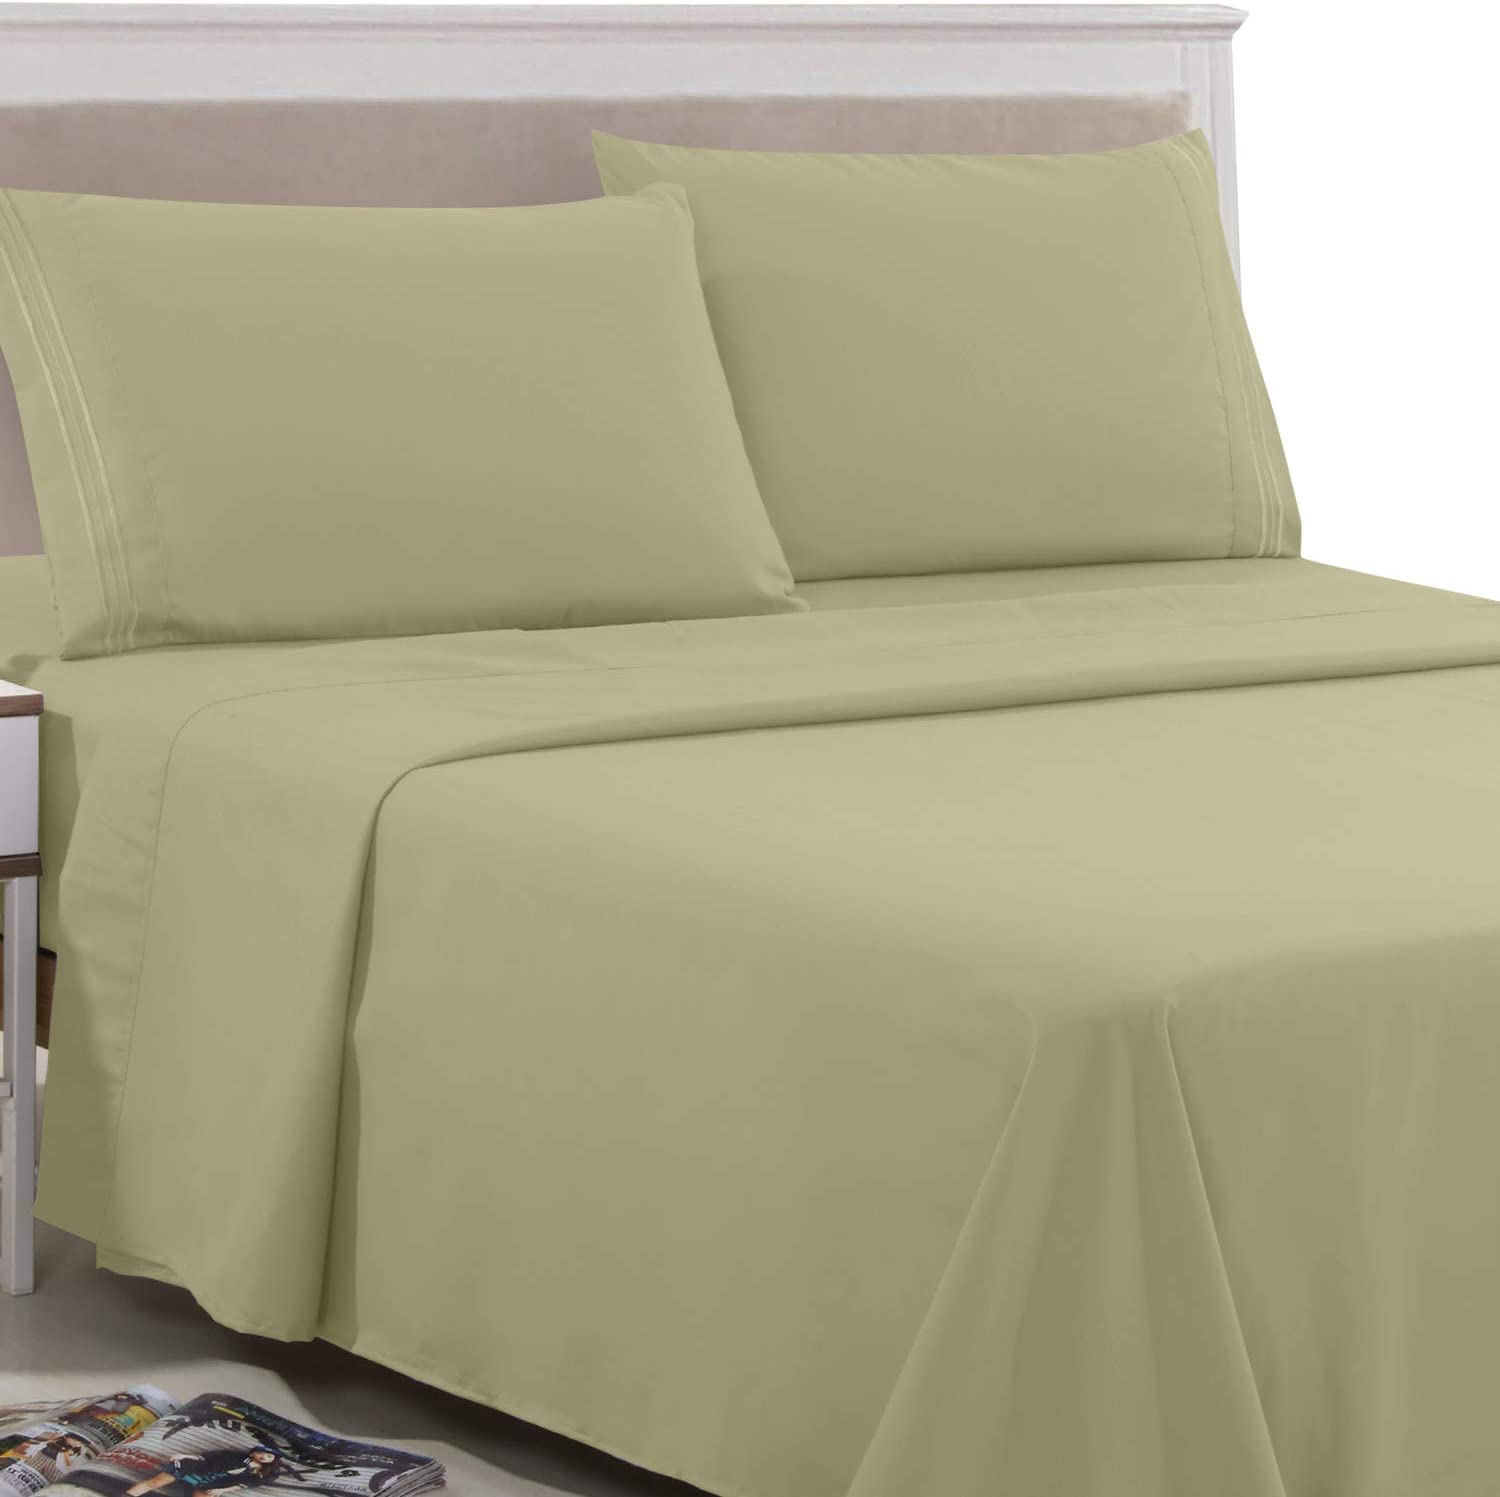 Lux Decor Collection King Bed Sheets Set - King Sheets Brushed Microfiber 1800 Thread Count Bedding - Wrinkle, Stain, Fade Resistant - Deep Pocket King Size Sheets Set - 6 PC (King, Plain Olive Green)